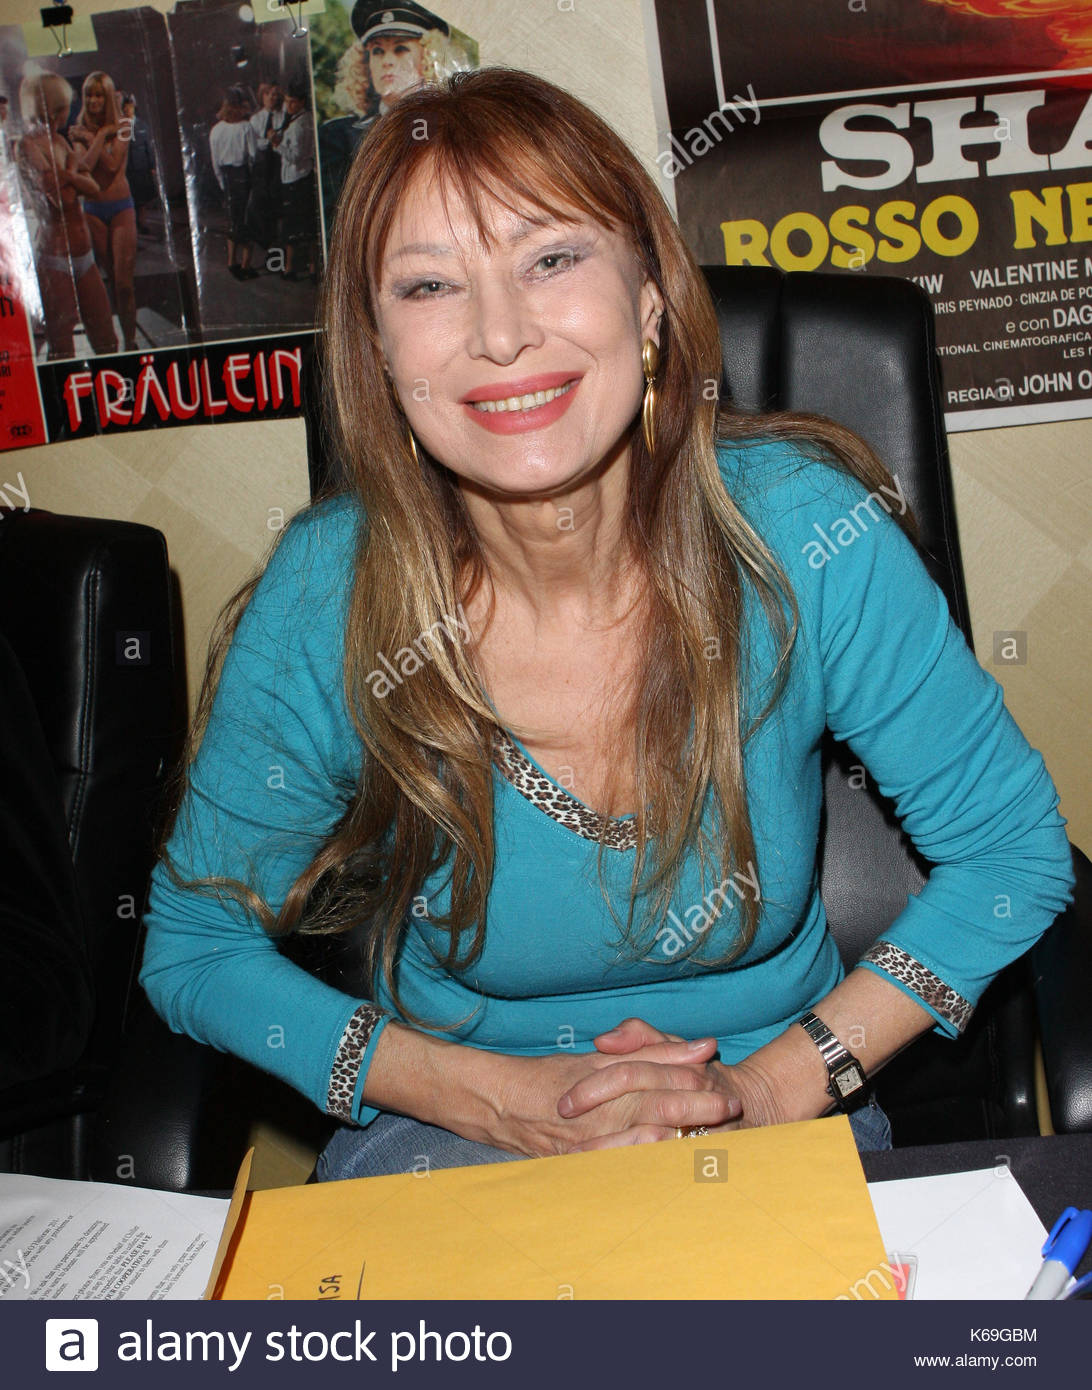 malisa longo_Malisa Longo. Celebrities signing autographs and meeting fans at The Stock Photo ...